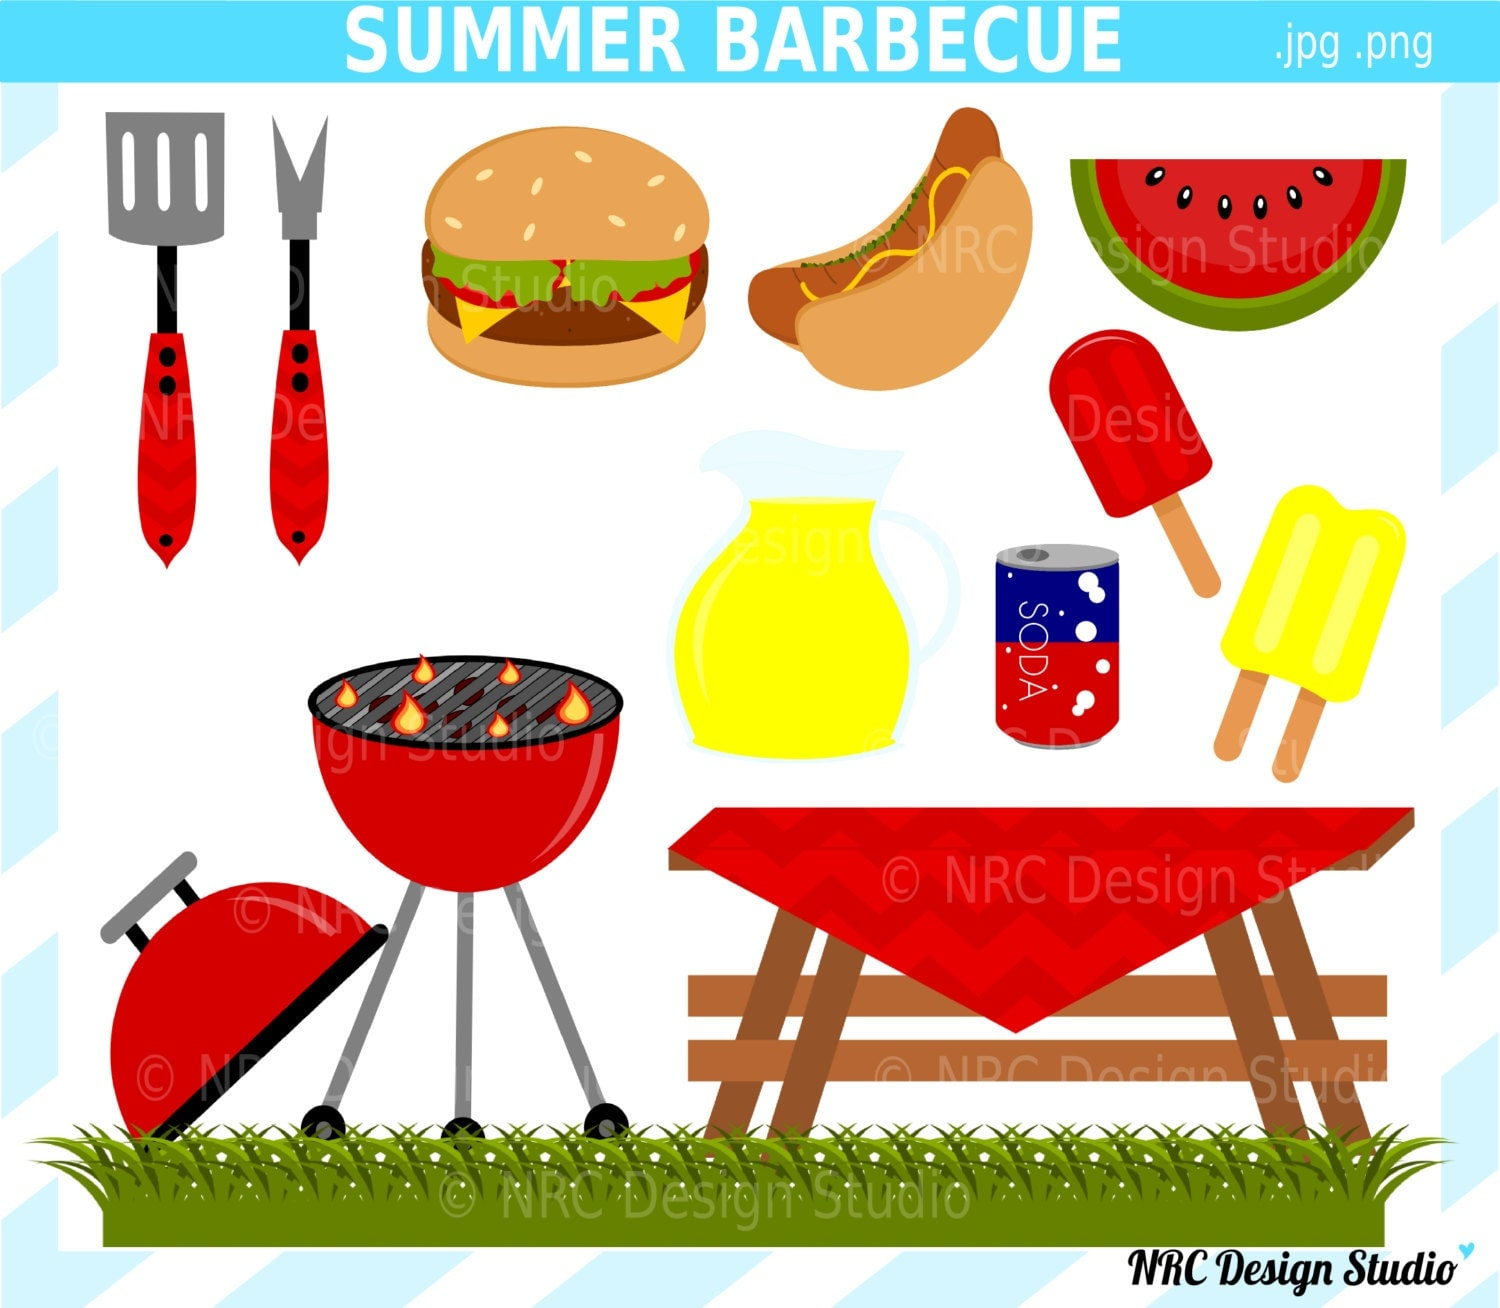 Barbecue Party Clip Art - Digital Barbecue Clipart - Cute, Food, Grill ...